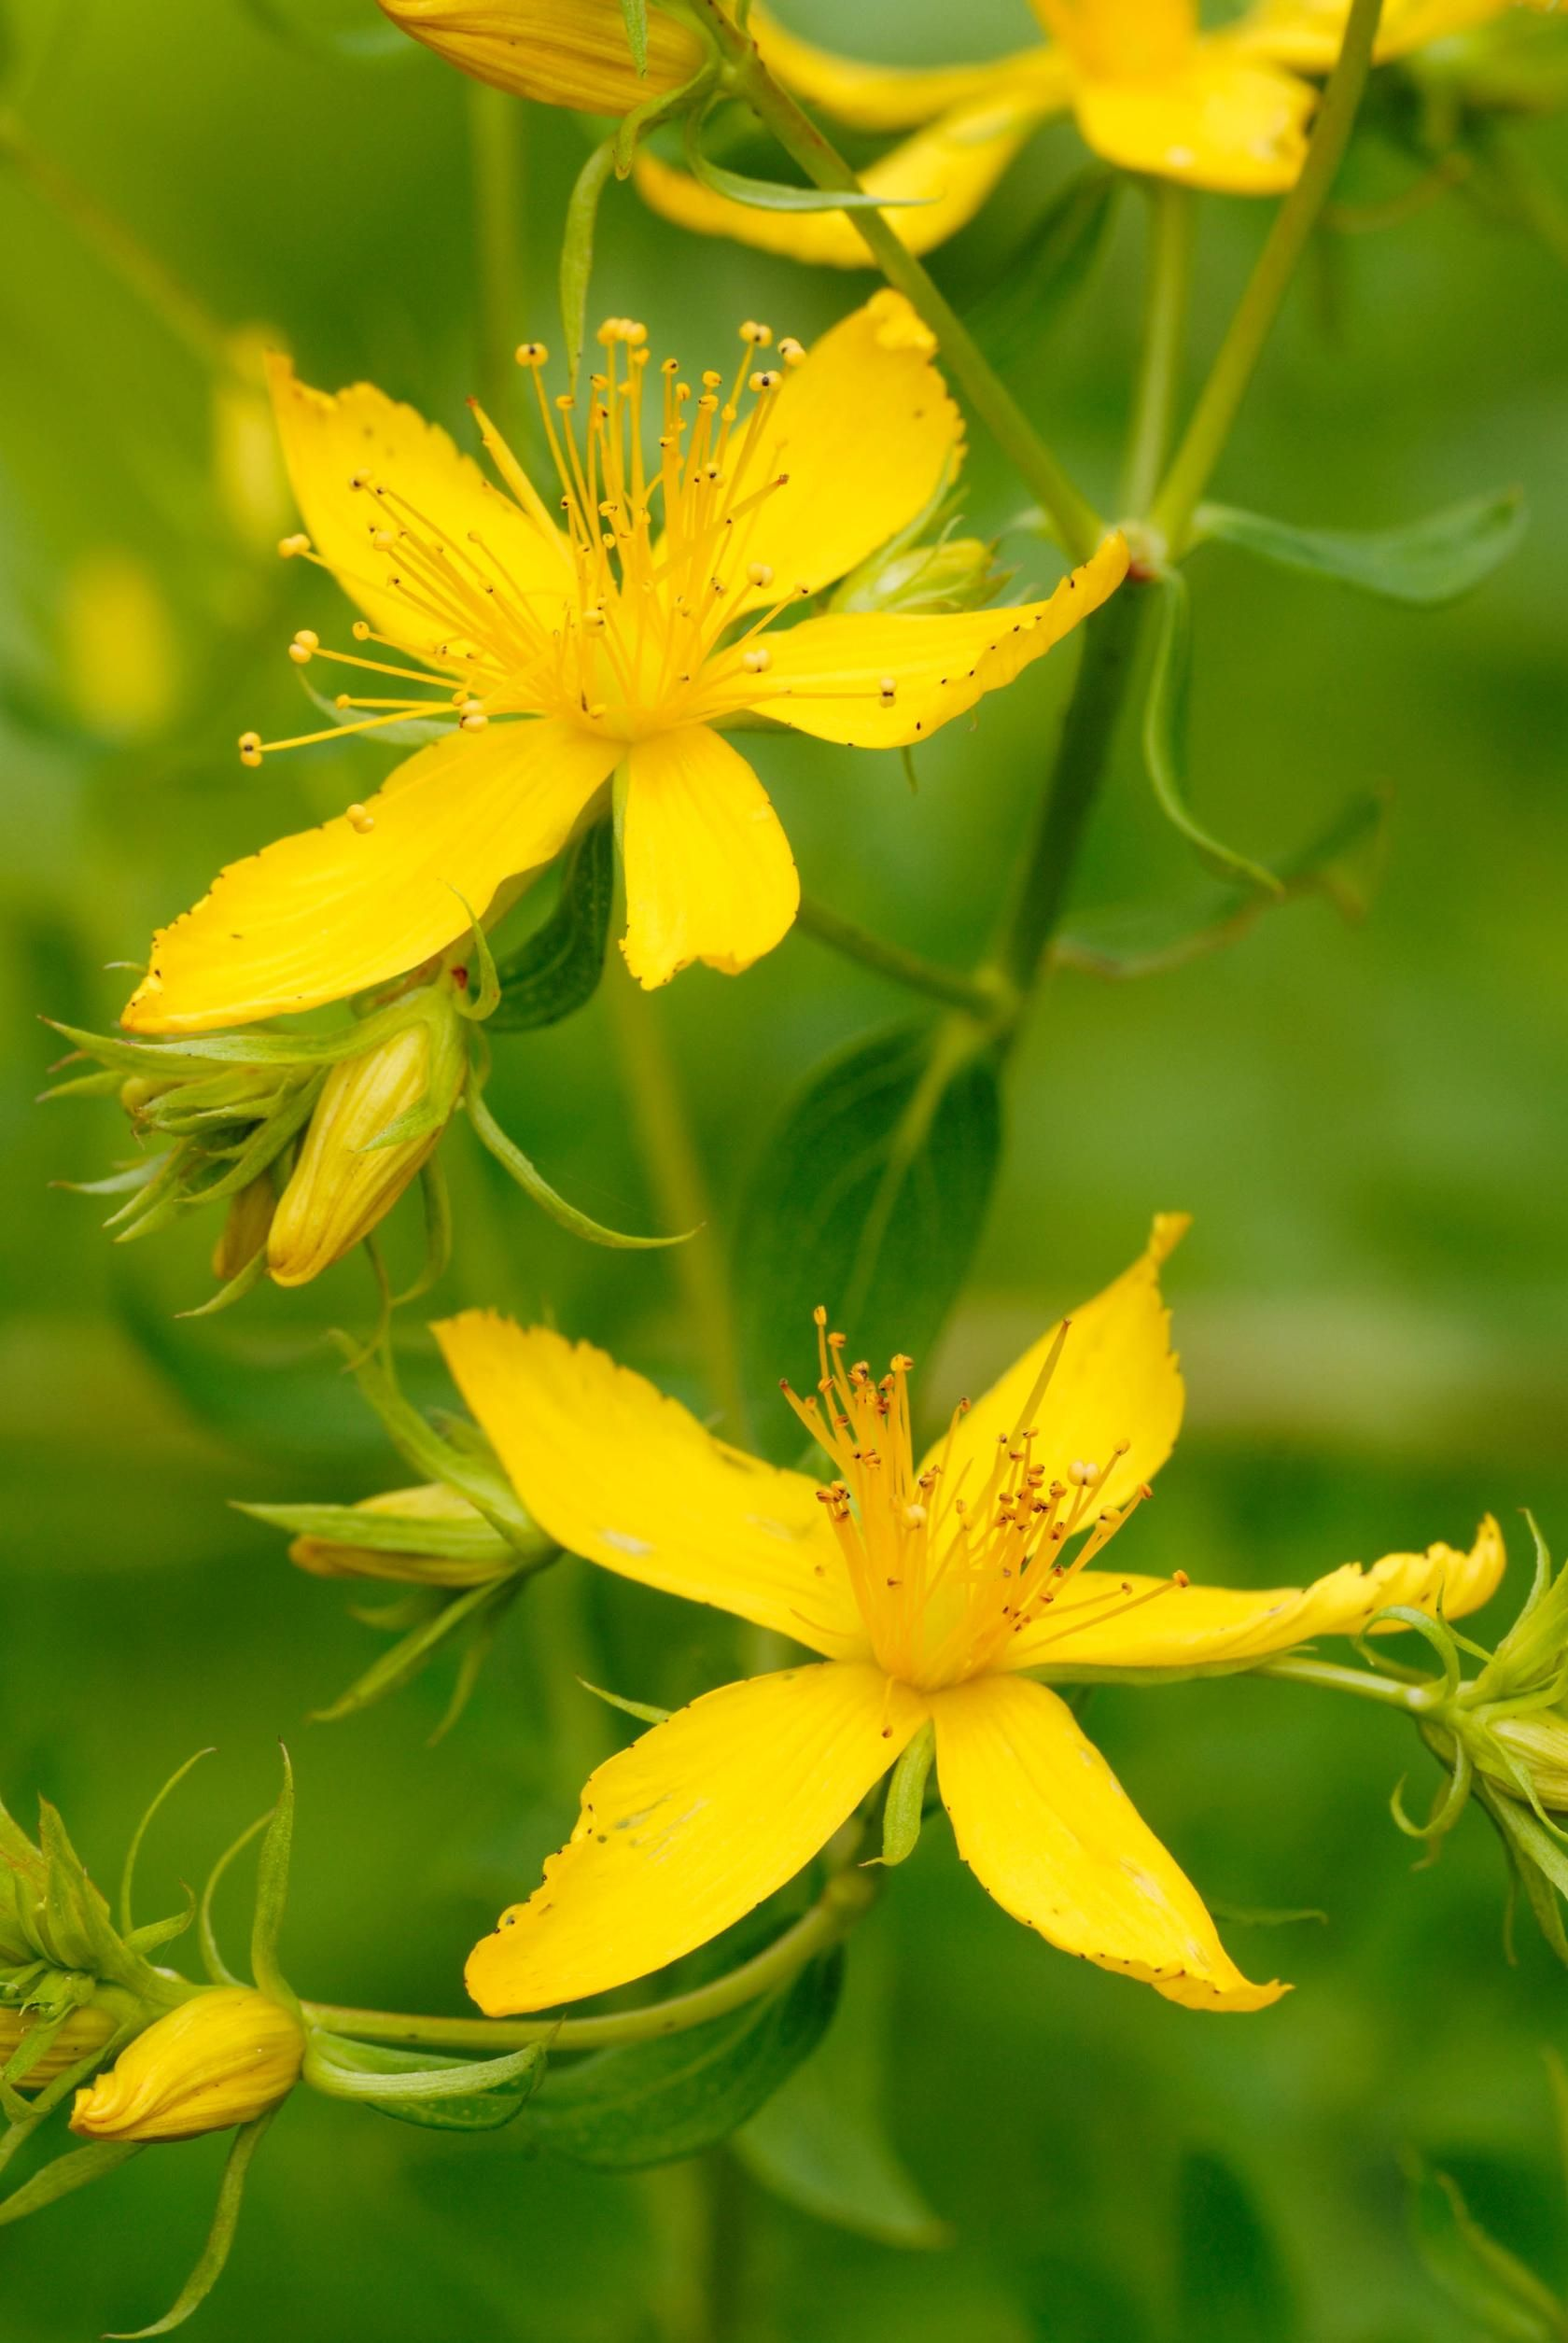 Perforate St Johns Wart Hypericum Perforatum Perennial